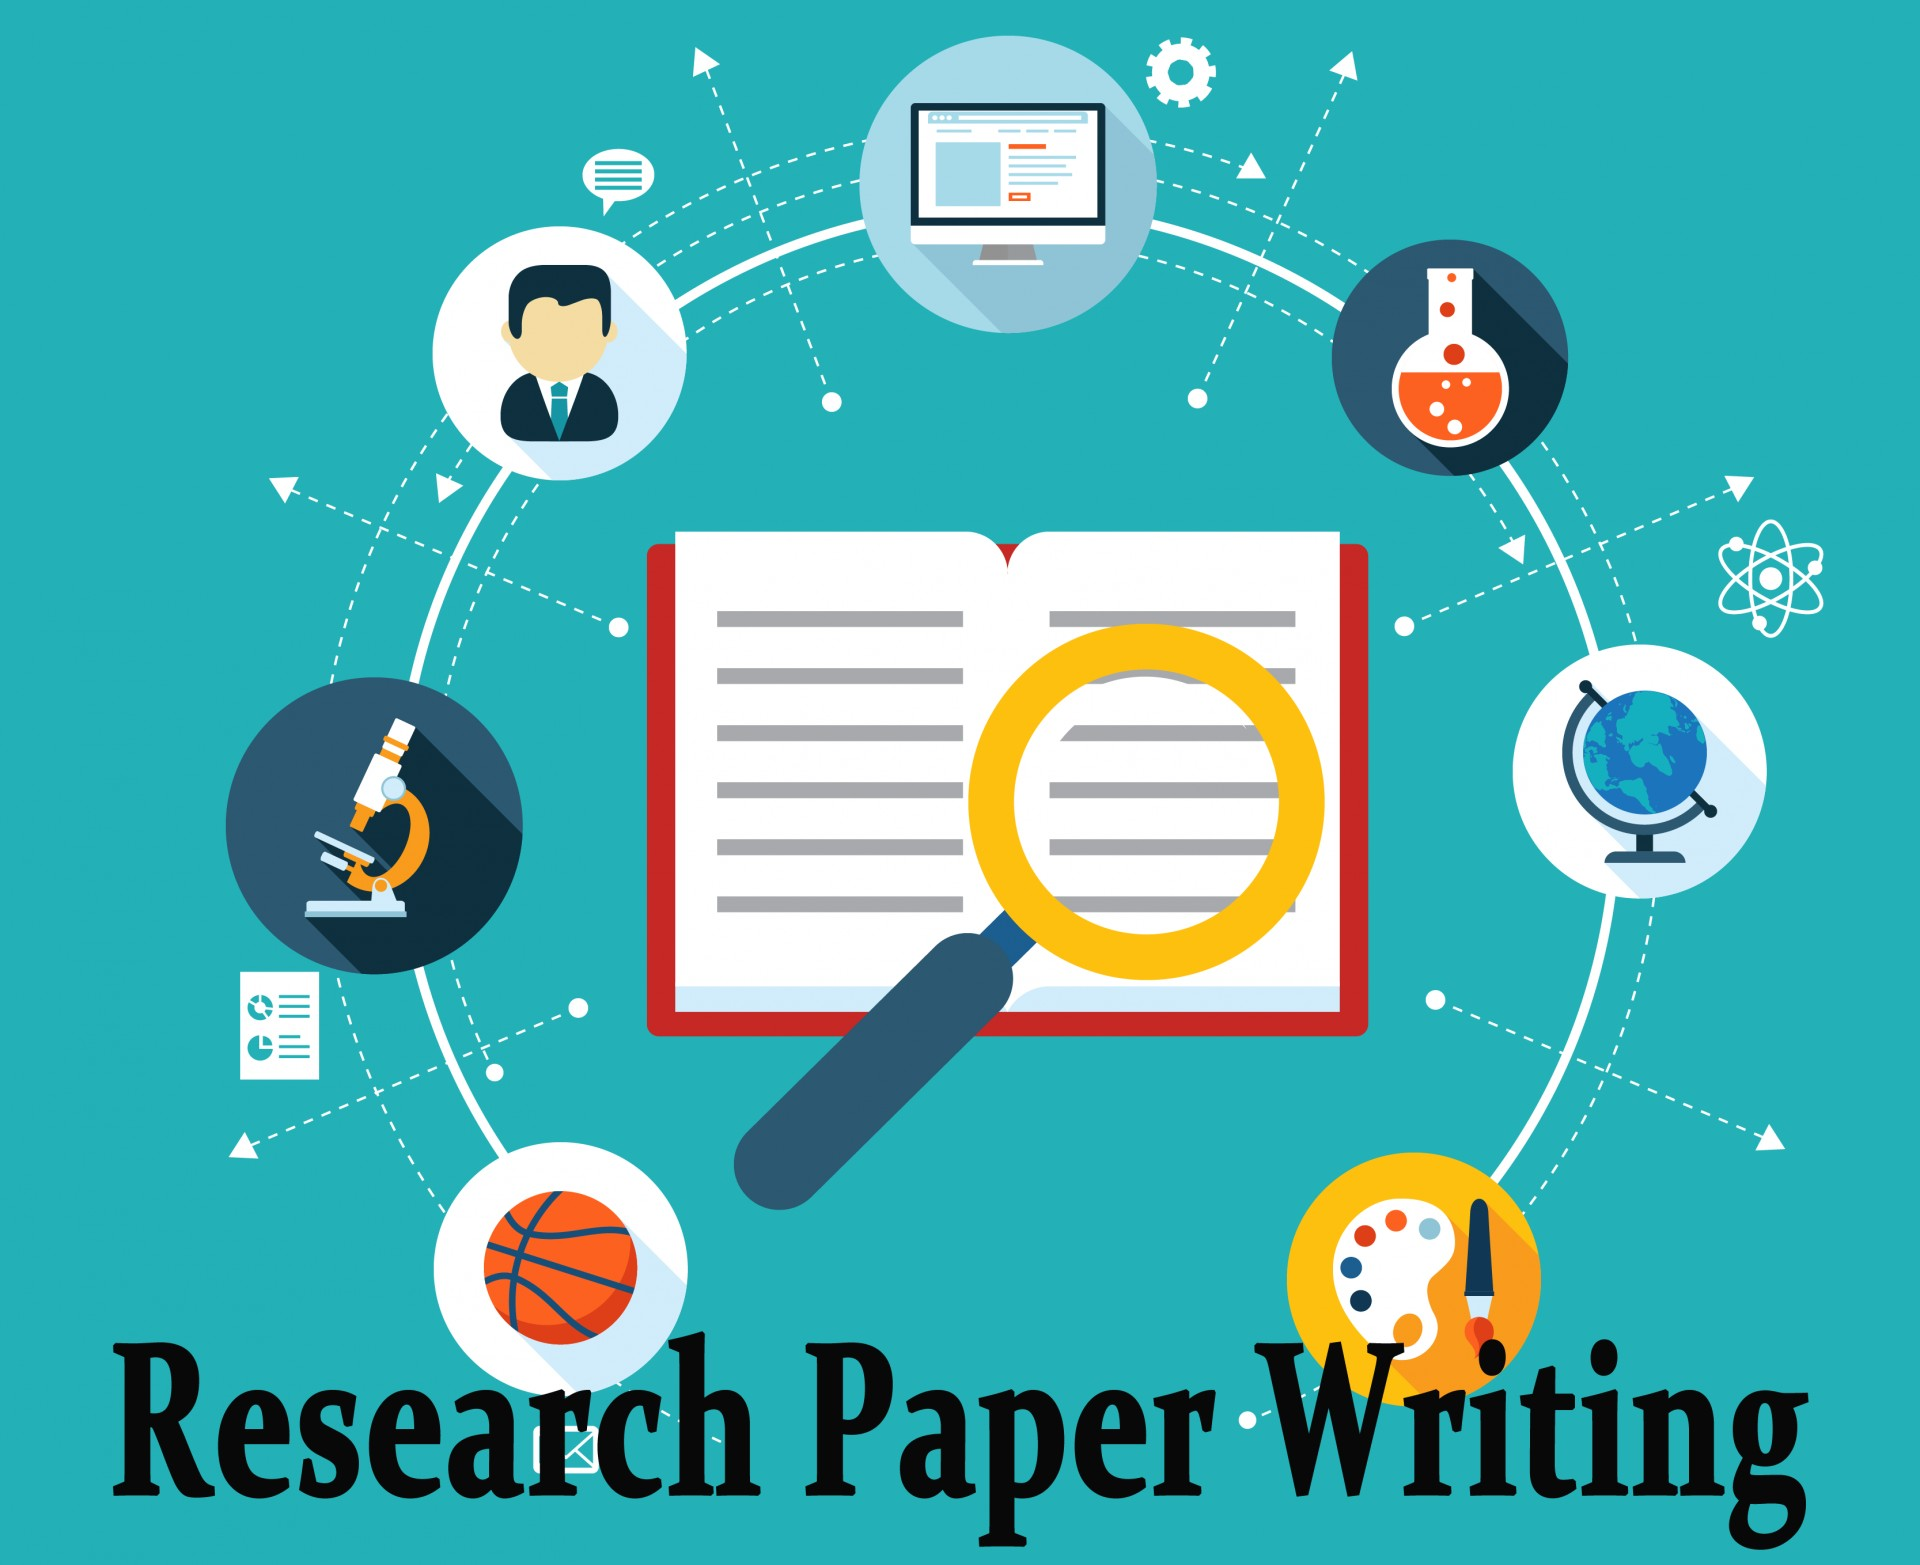 001 Help On Research Paper 503 Effective Writing Sensational Need My Desk With Free 1920